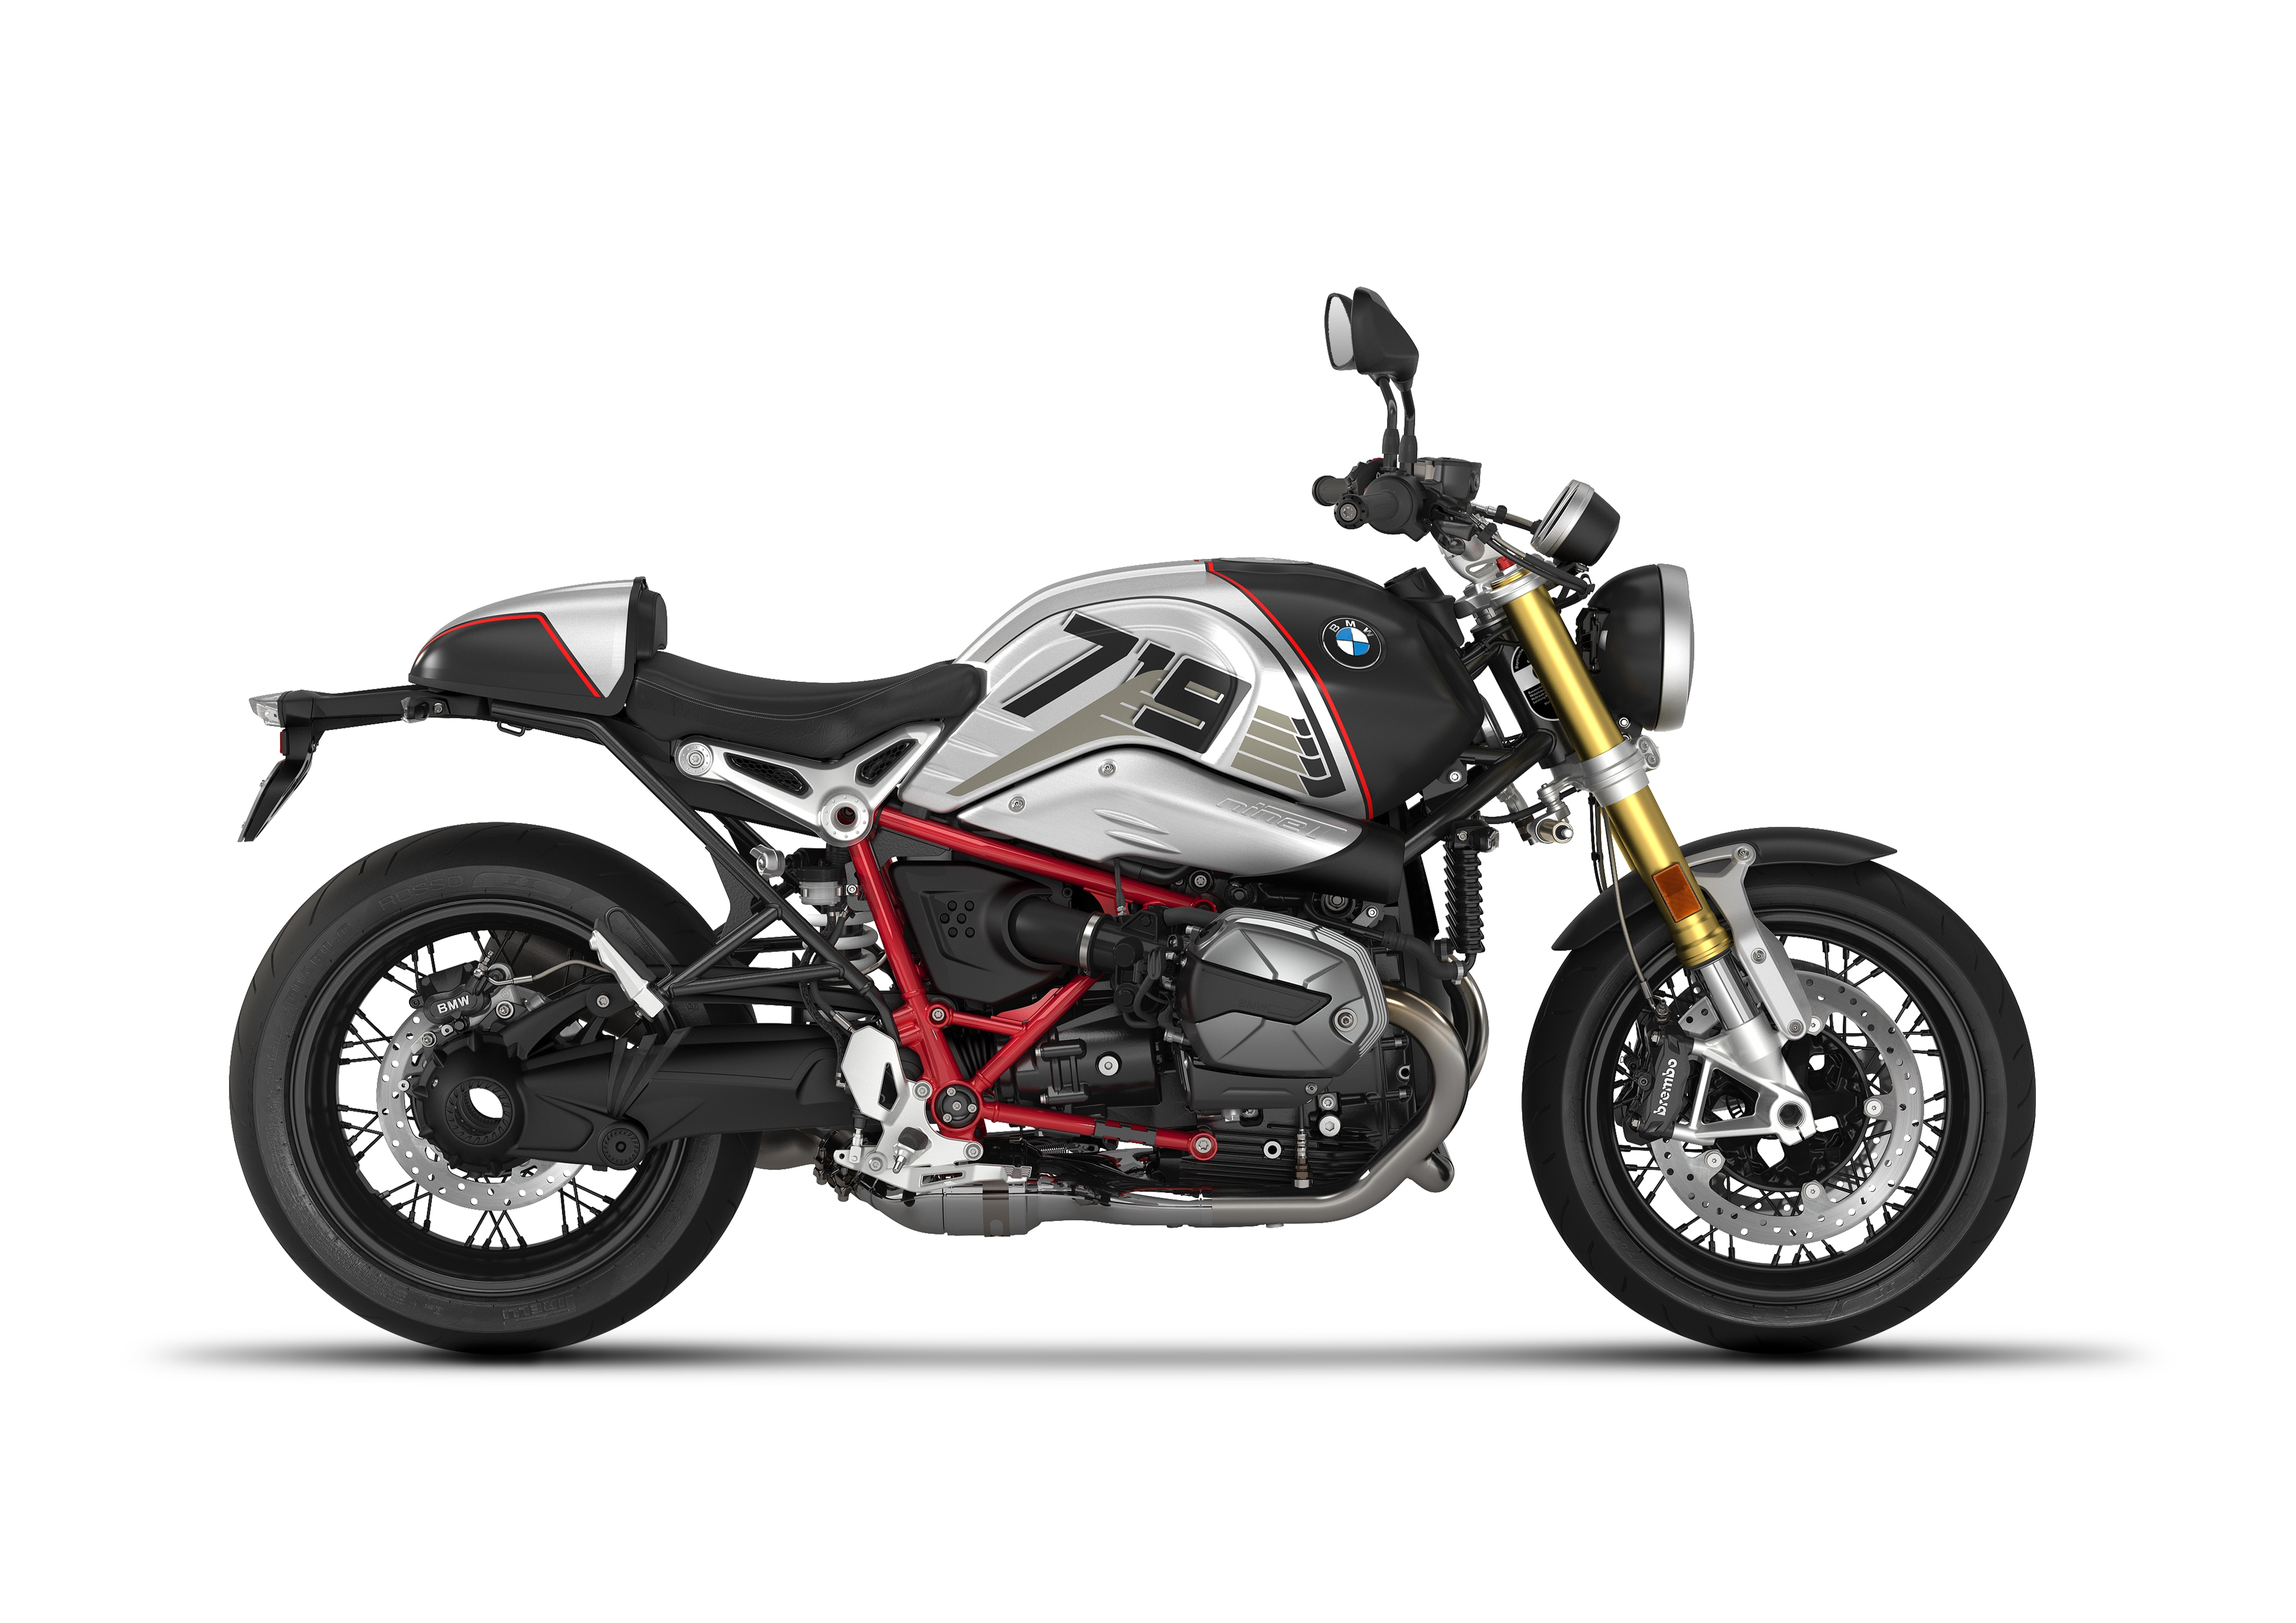 Both the motorcycles come based on the same 1,170 cc air/oil-cooled 2-cylinder four-stroke engine featuring DOHC cylinder head, four valves and two camshafts and shaft drive. (In pic: BMW R nineT in Night Black matt)